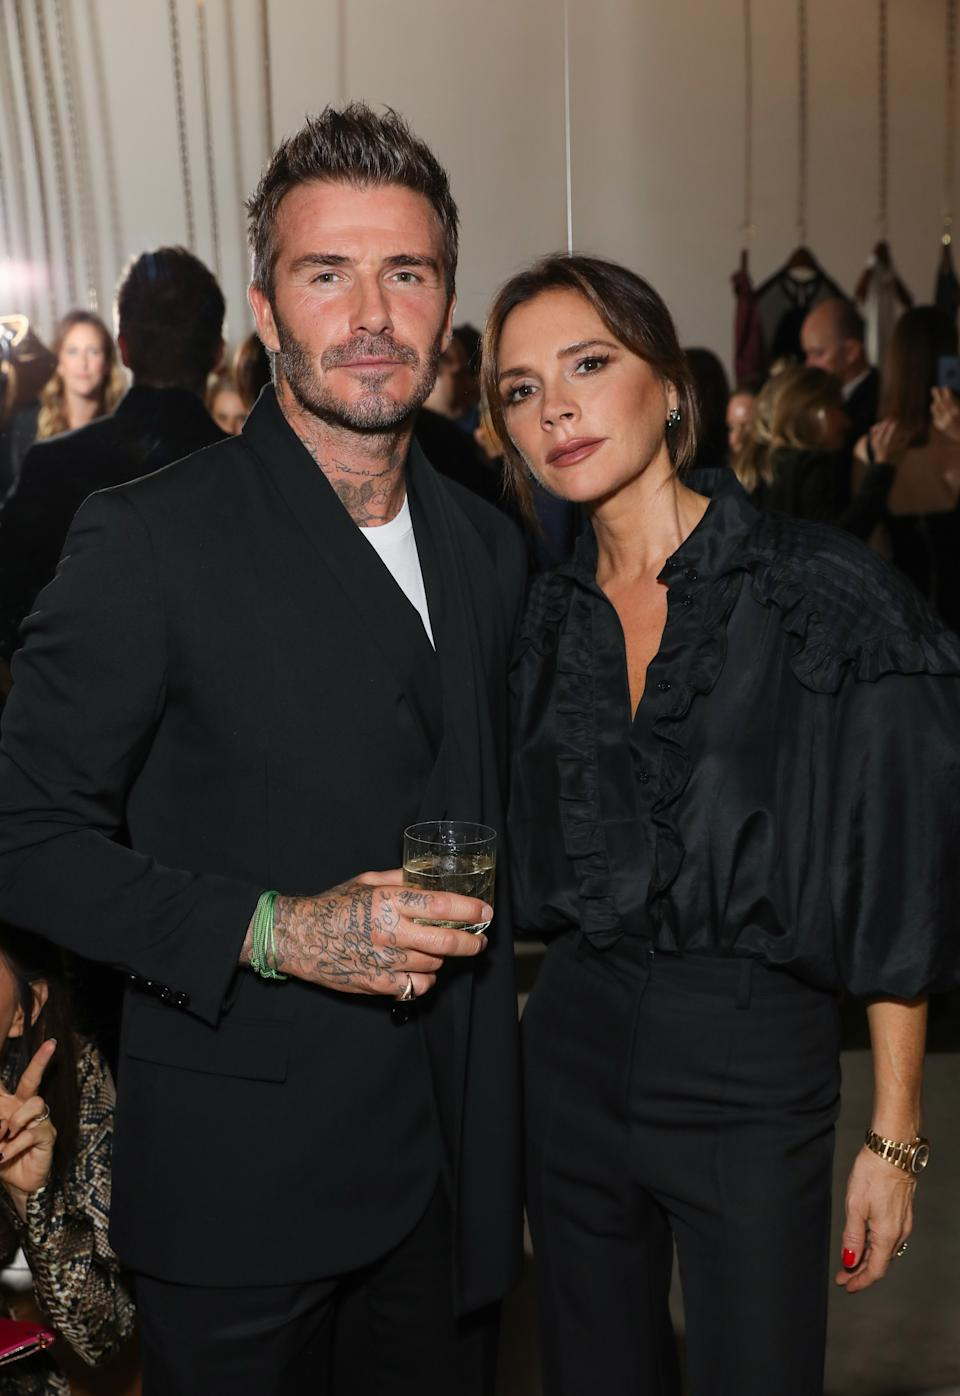 David and Victoria Beckham attend Victoria Beckham and Sotheby's celebration of Andy Warhol with Don Julio 1942 at her Dover Street store, on September 30, 2019 in London, England. (Photo by Darren Gerrish/WireImage for White Company)